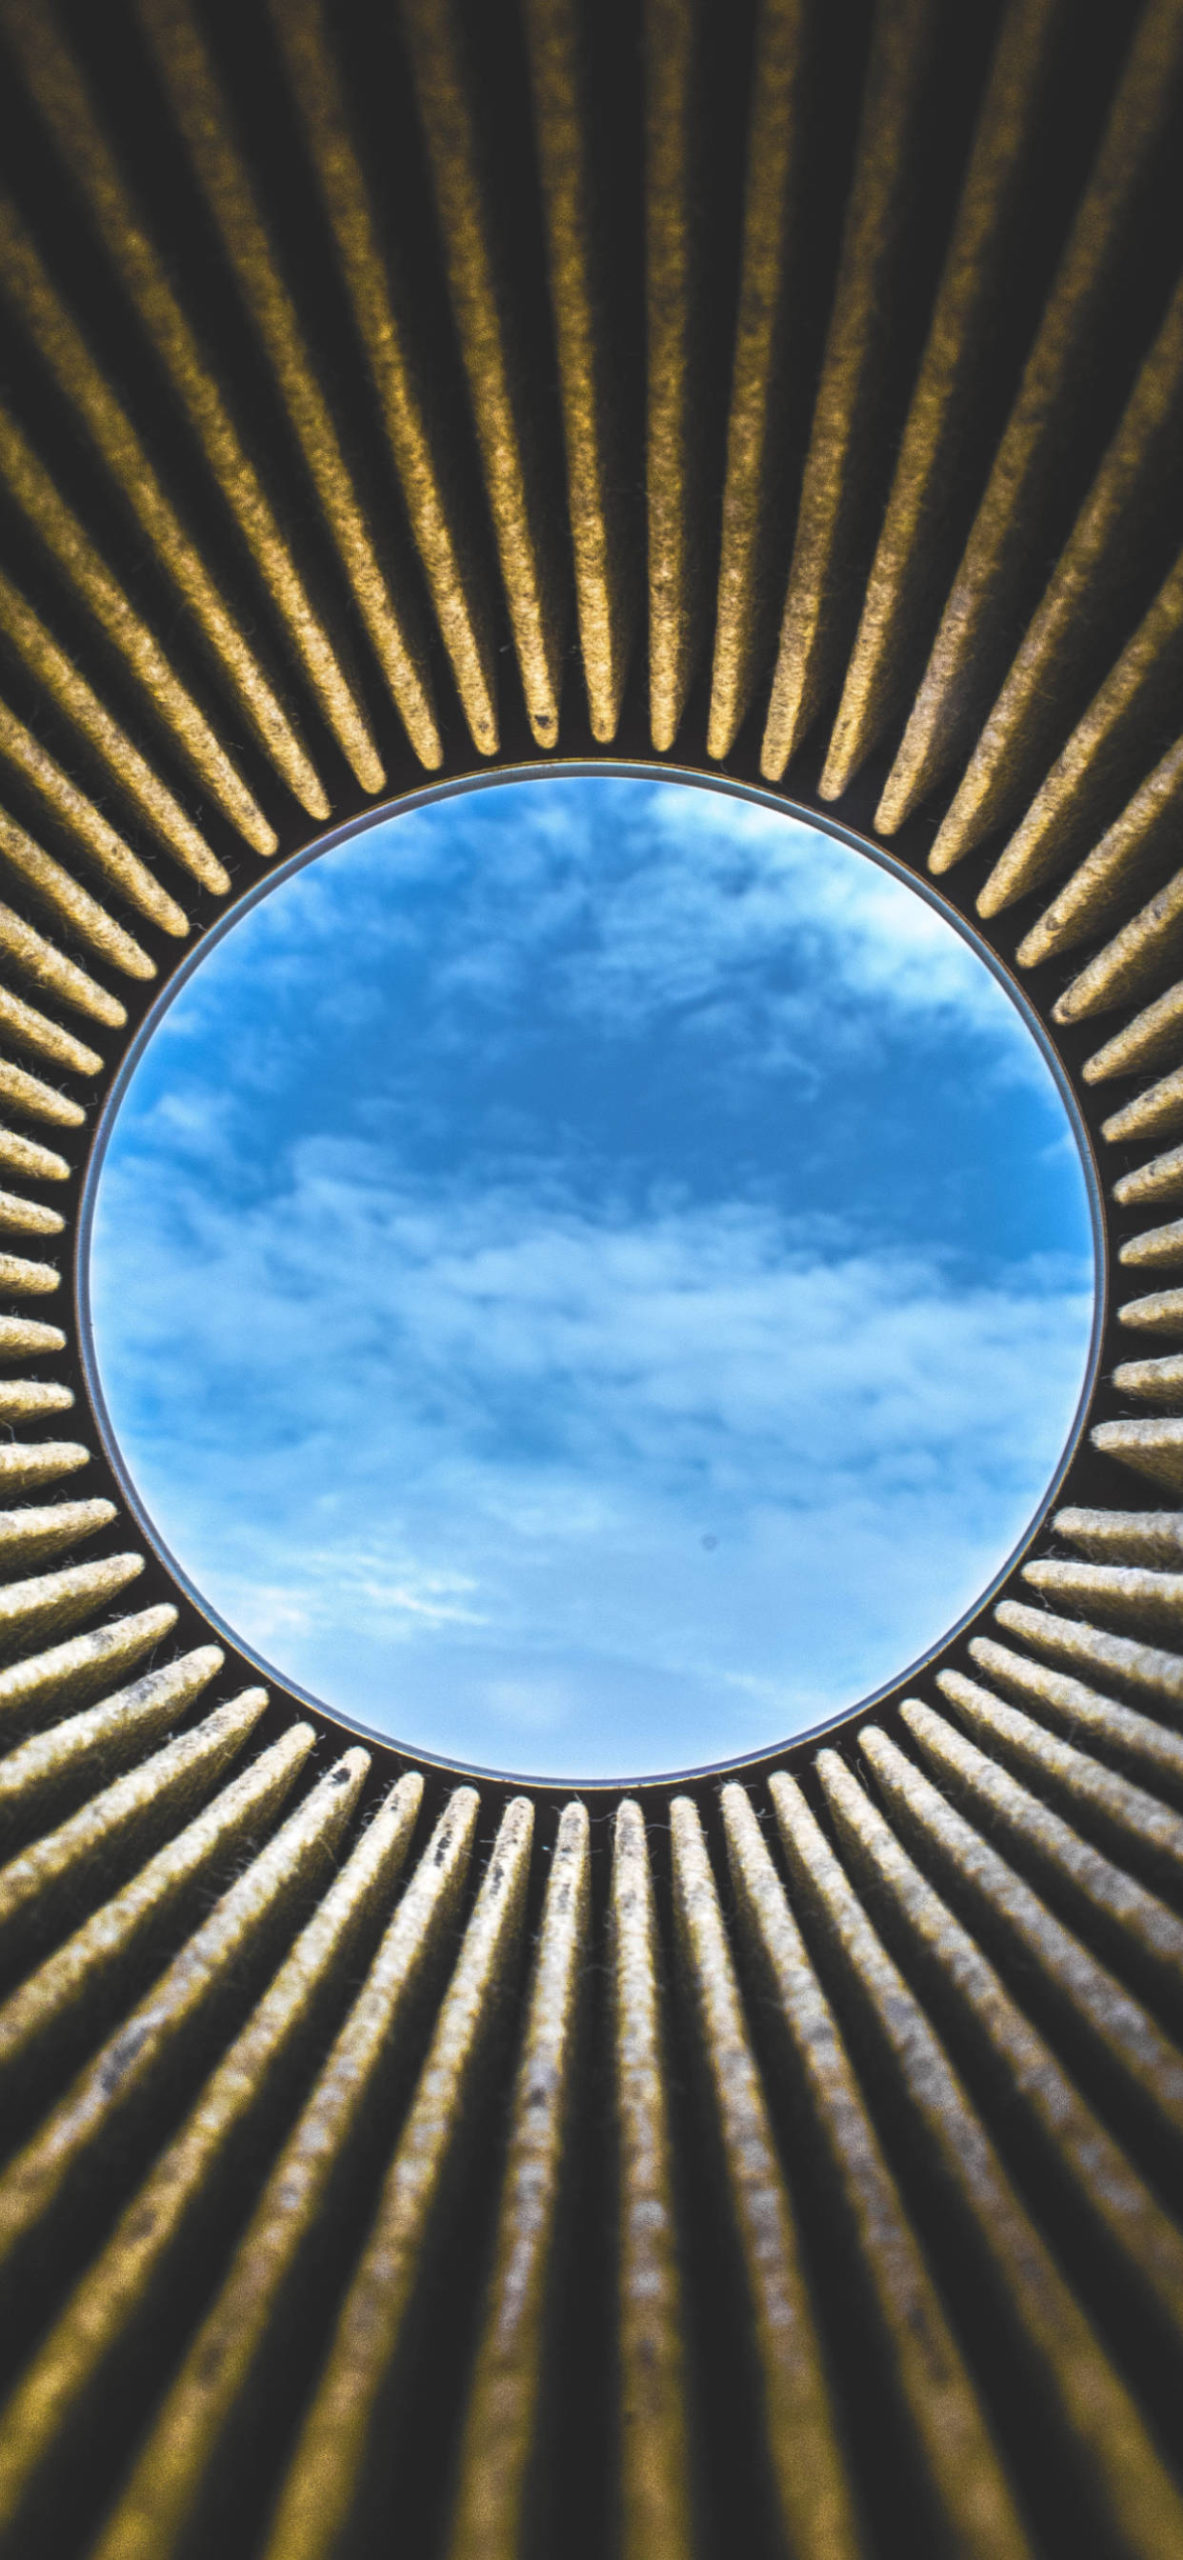 iPhone wallpapers architecture circle sky scaled Architecture